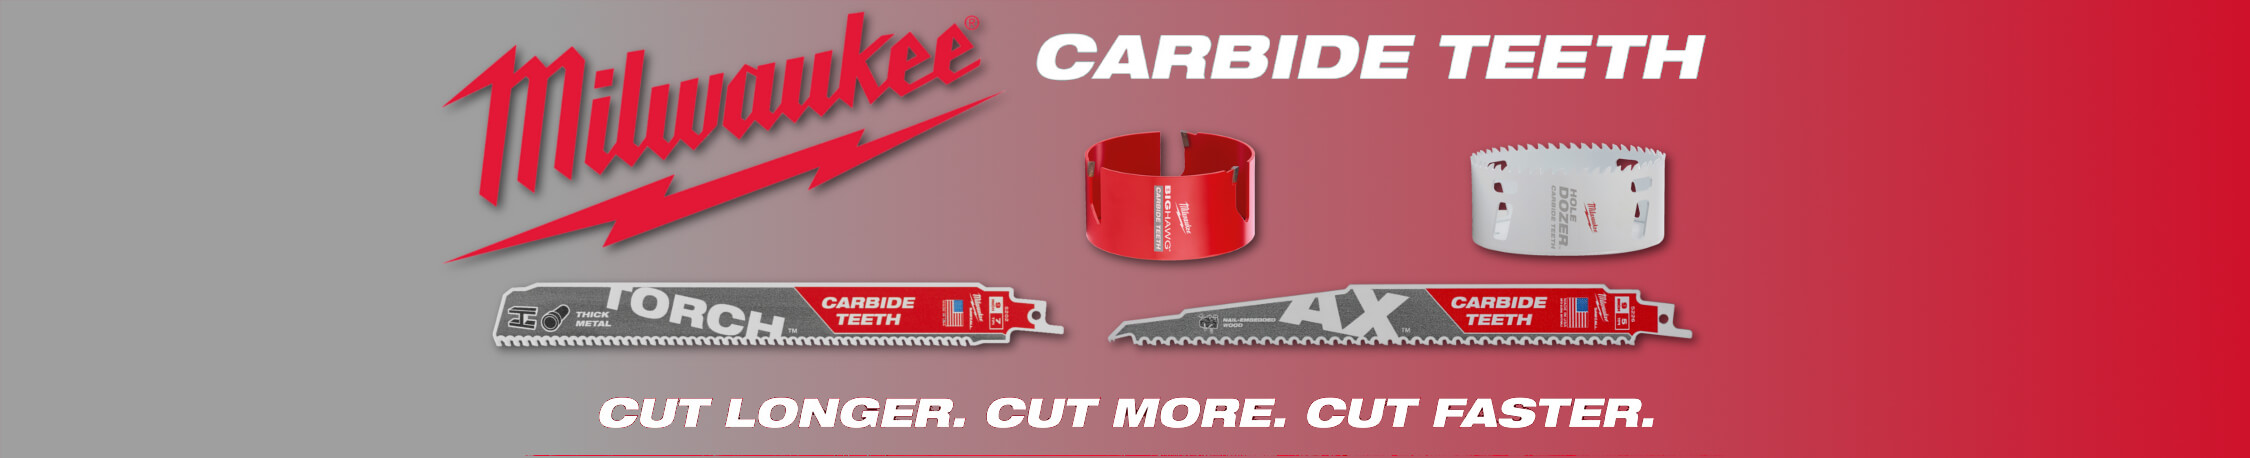 Homepage banner showing off Milwaukee's New Carbide Products